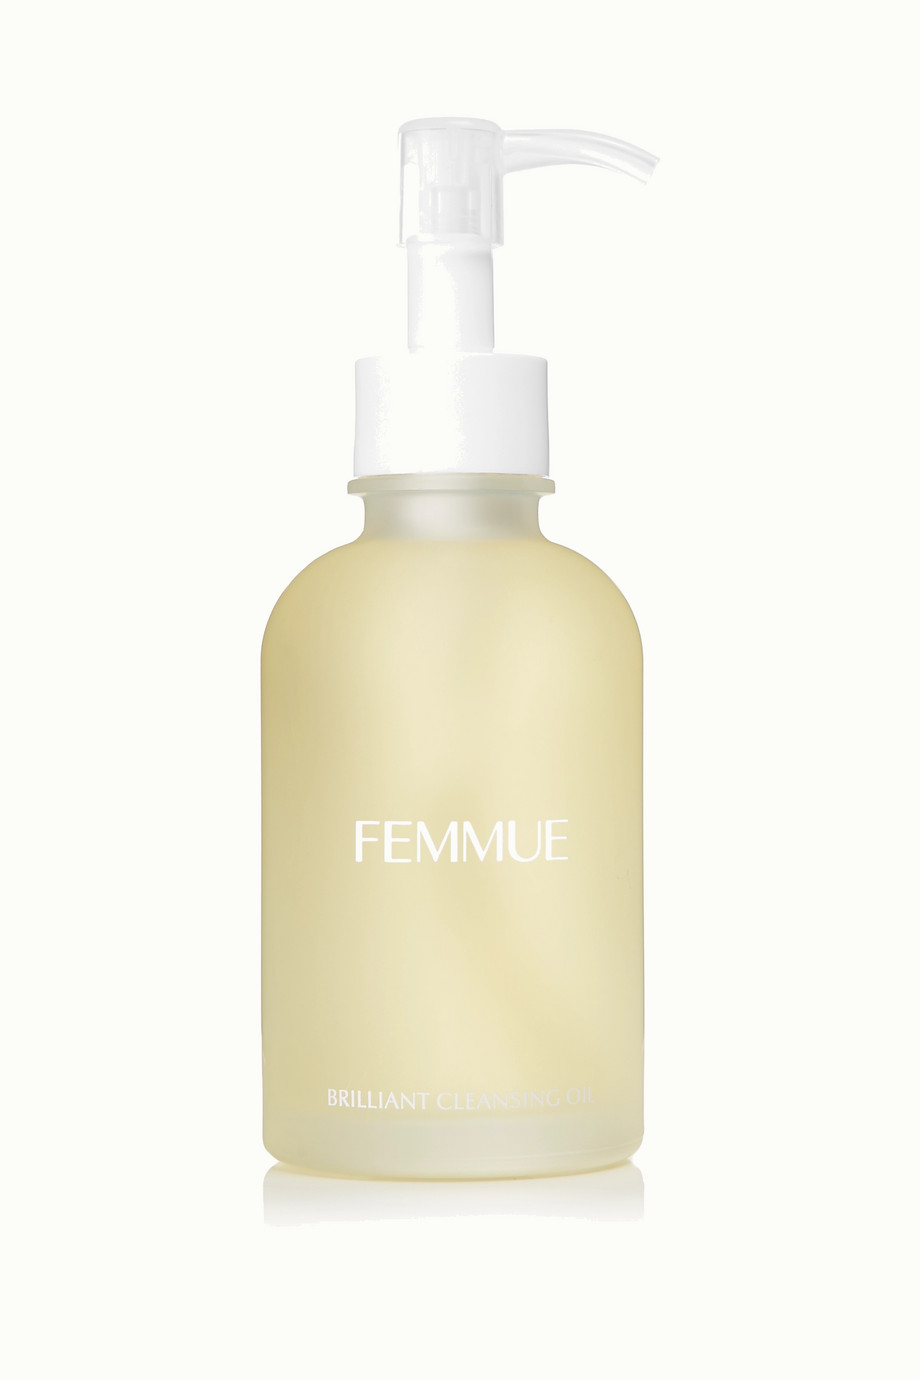 FEMMUE Brilliant Cleansing Oil, 125ml